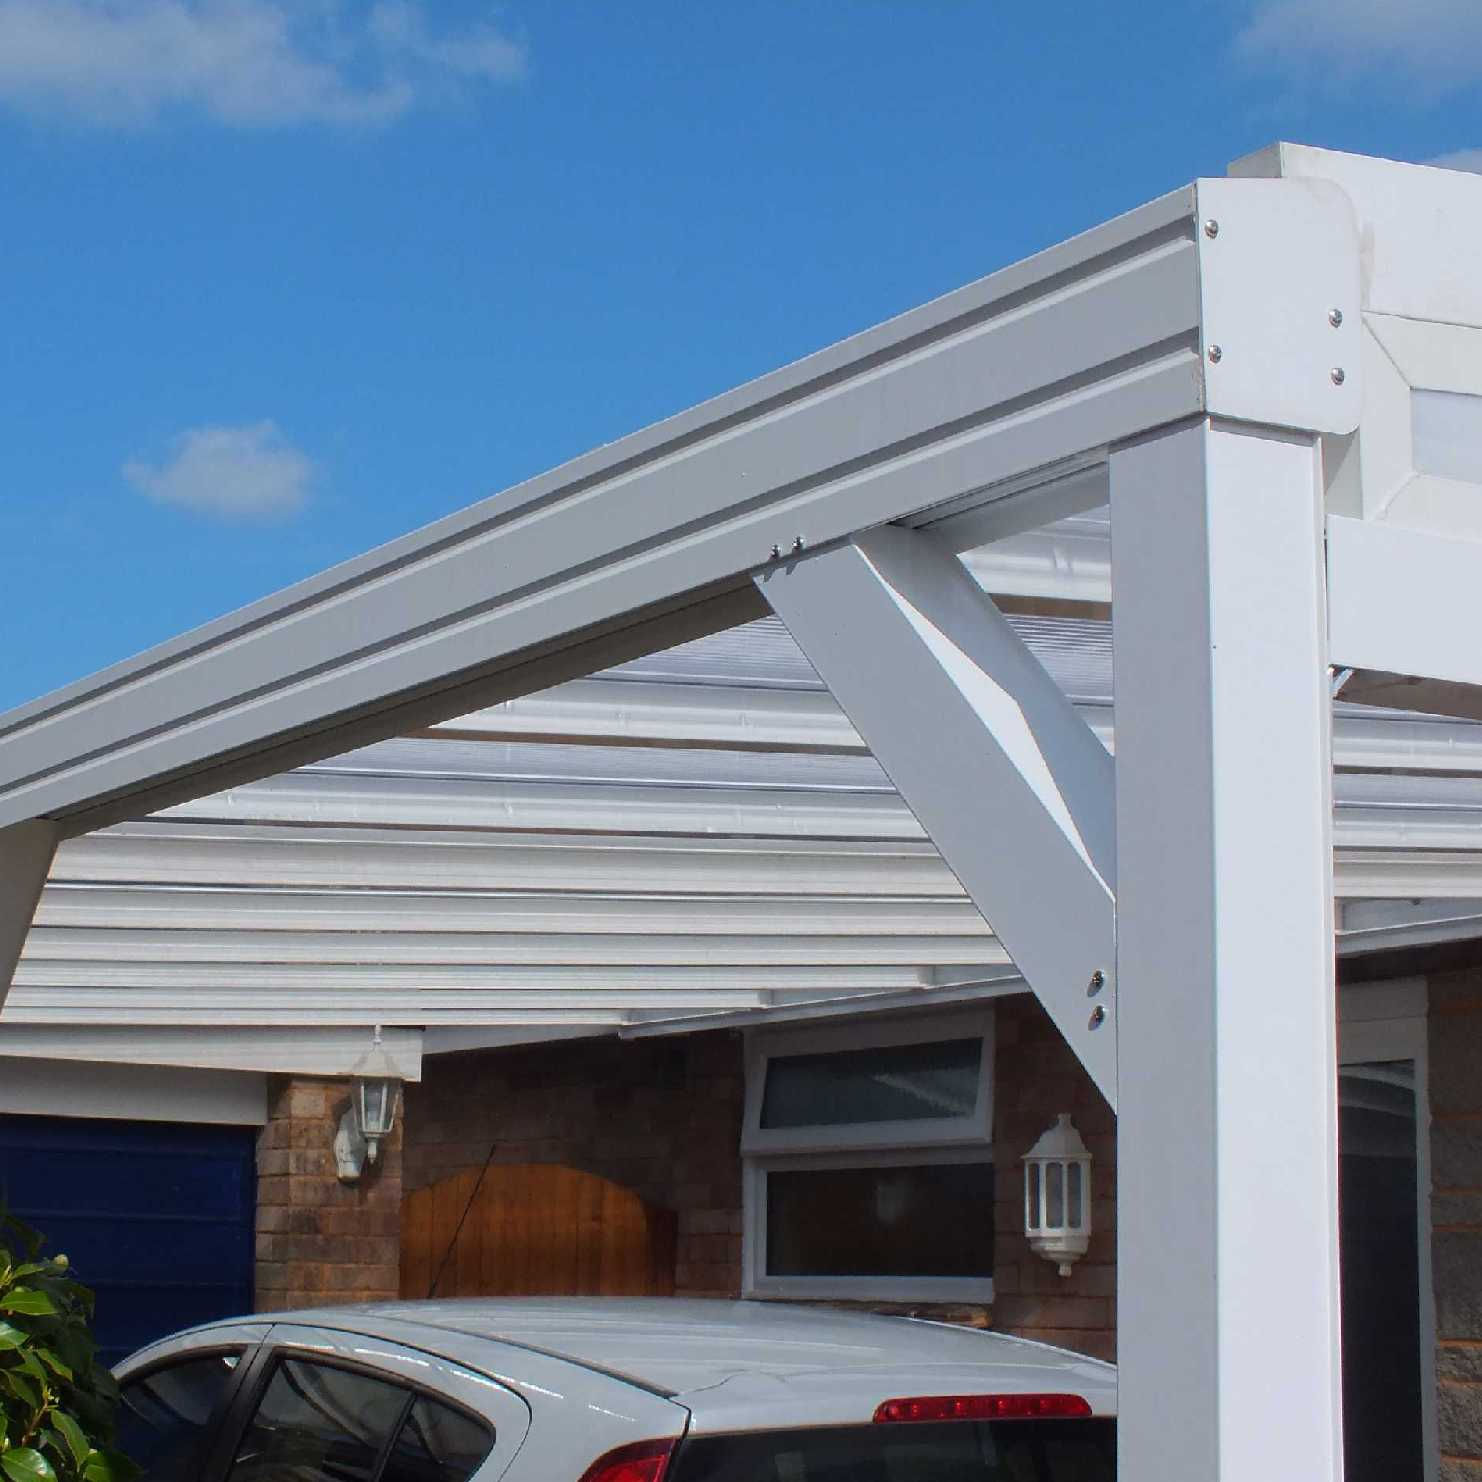 Great deals on Omega Smart White Lean-To Canopy with 16mm Polycarbonate Glazing - 11.6m (W) x 3.0m (P), (5) Supporting Posts